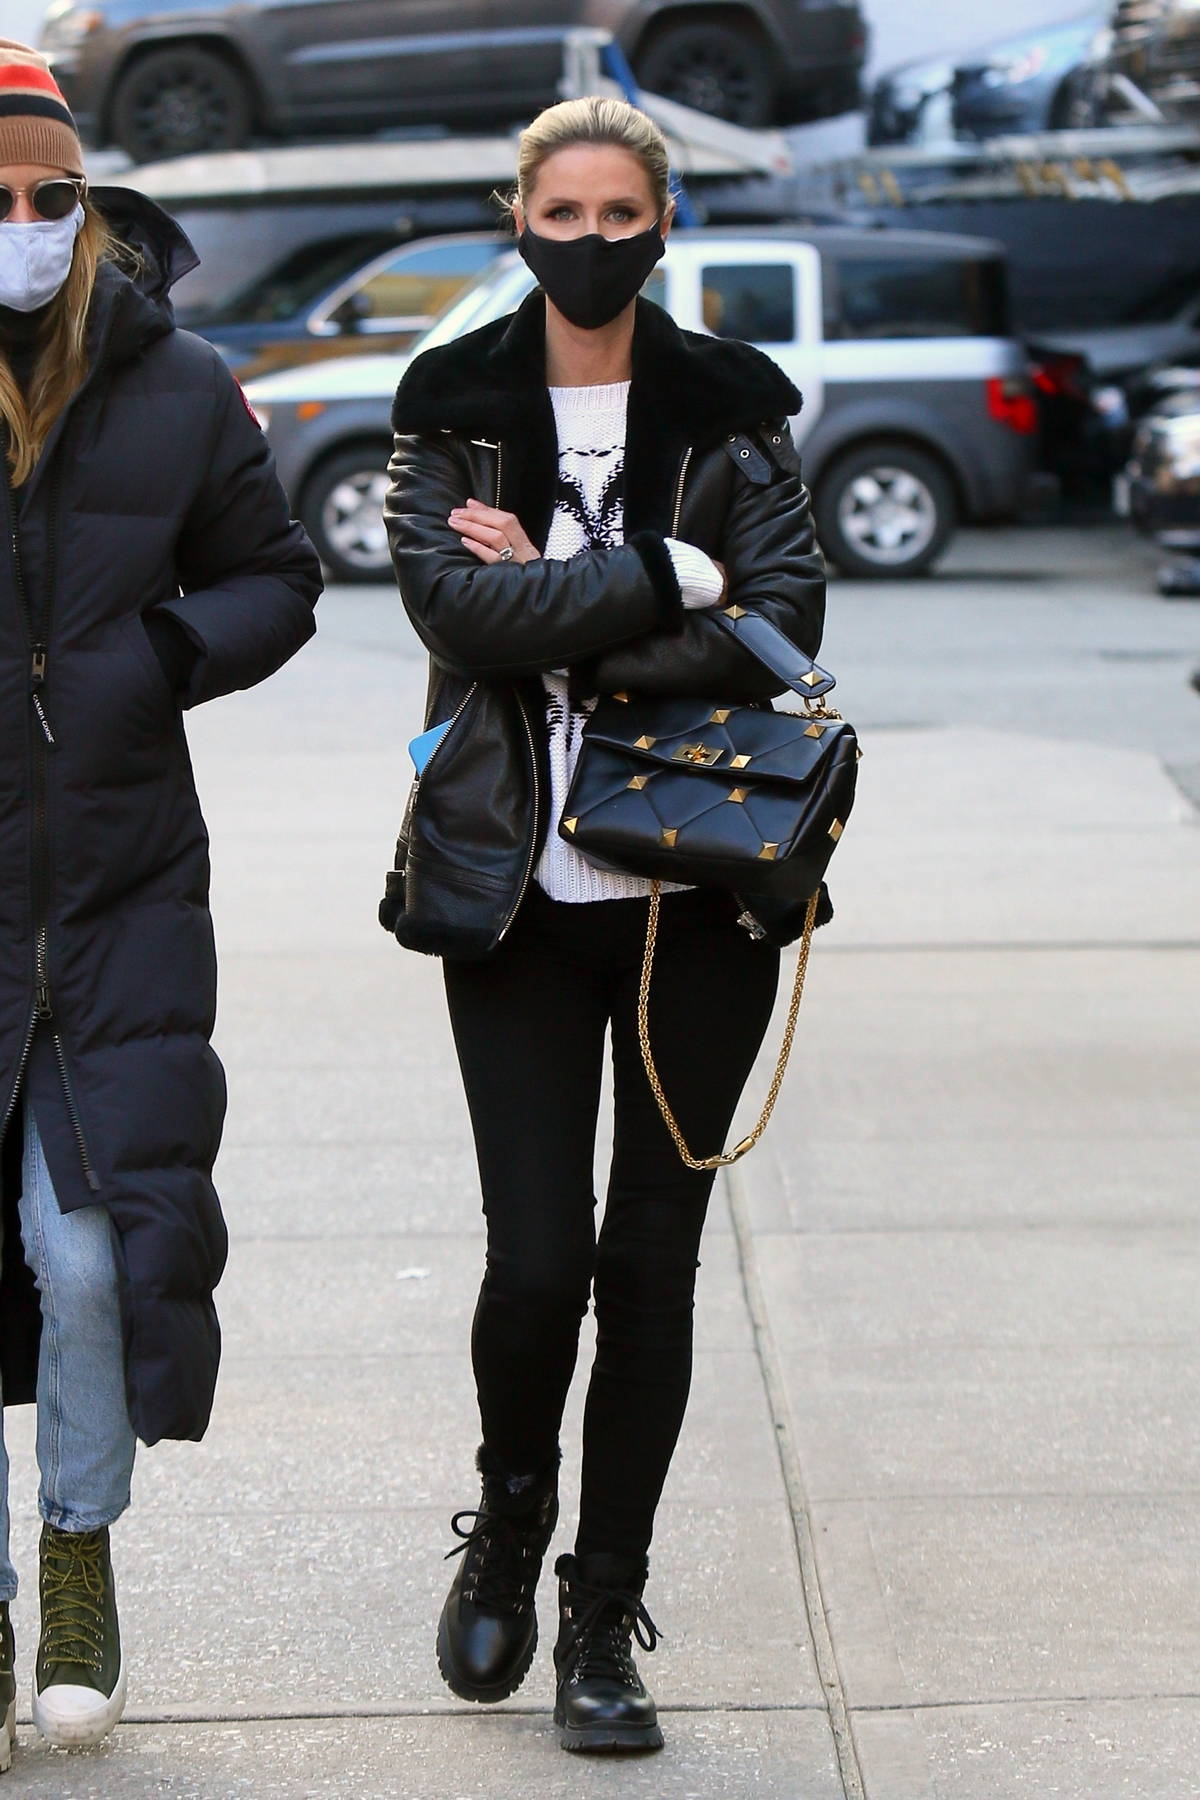 Nicky Hilton looks fashionable wearing a 'Playboy' sweater while out in Manhattan's Soho Area, New York